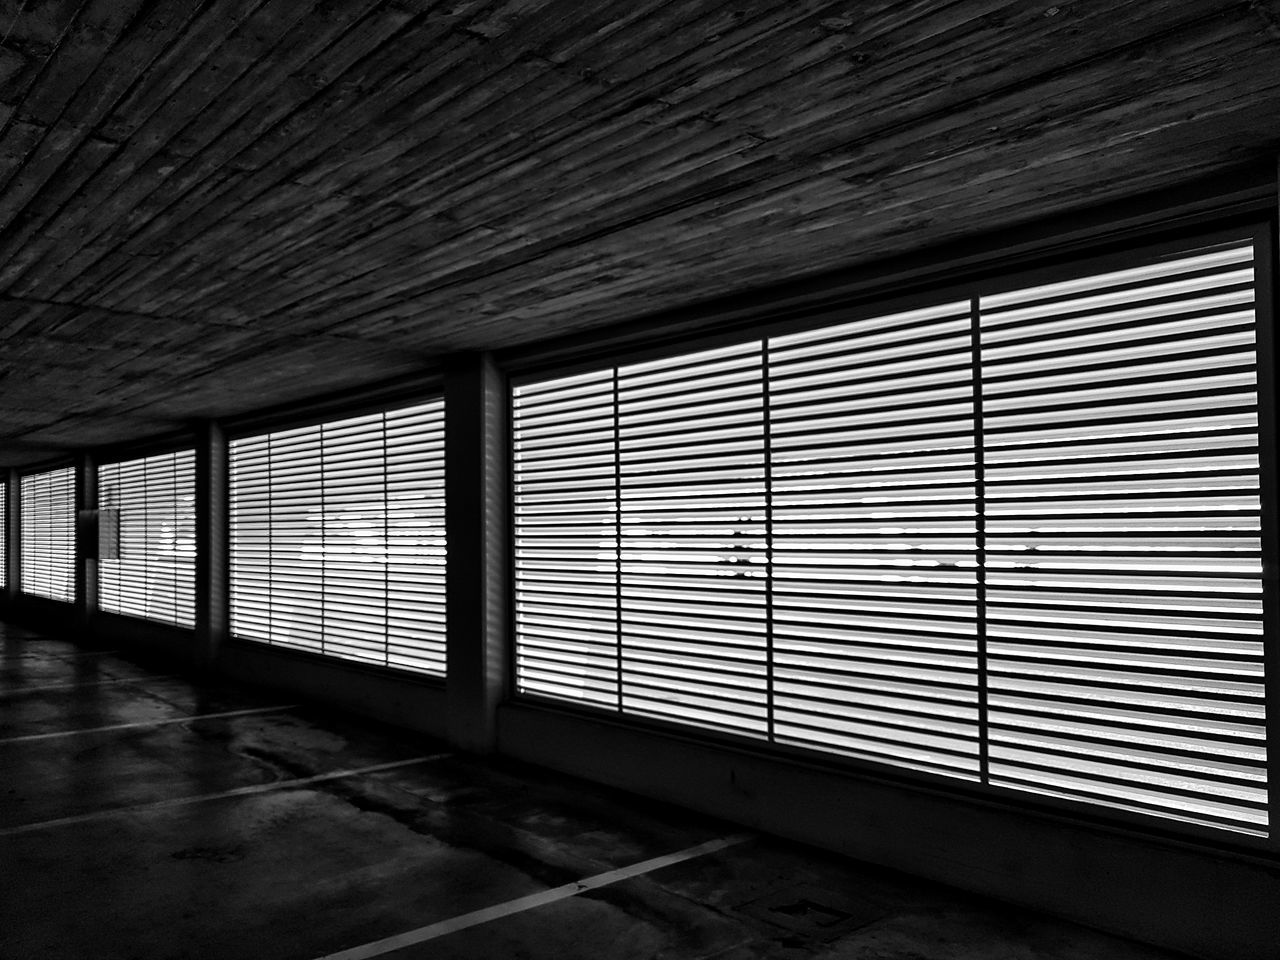 Window Blinds Built Structure No People Darkness And Light Sunlight Through The Window Lines From The Inside Looking Out Perspective Parking Indoors  Geometric Diagonal Lines Straight Lines Straight Lines Across